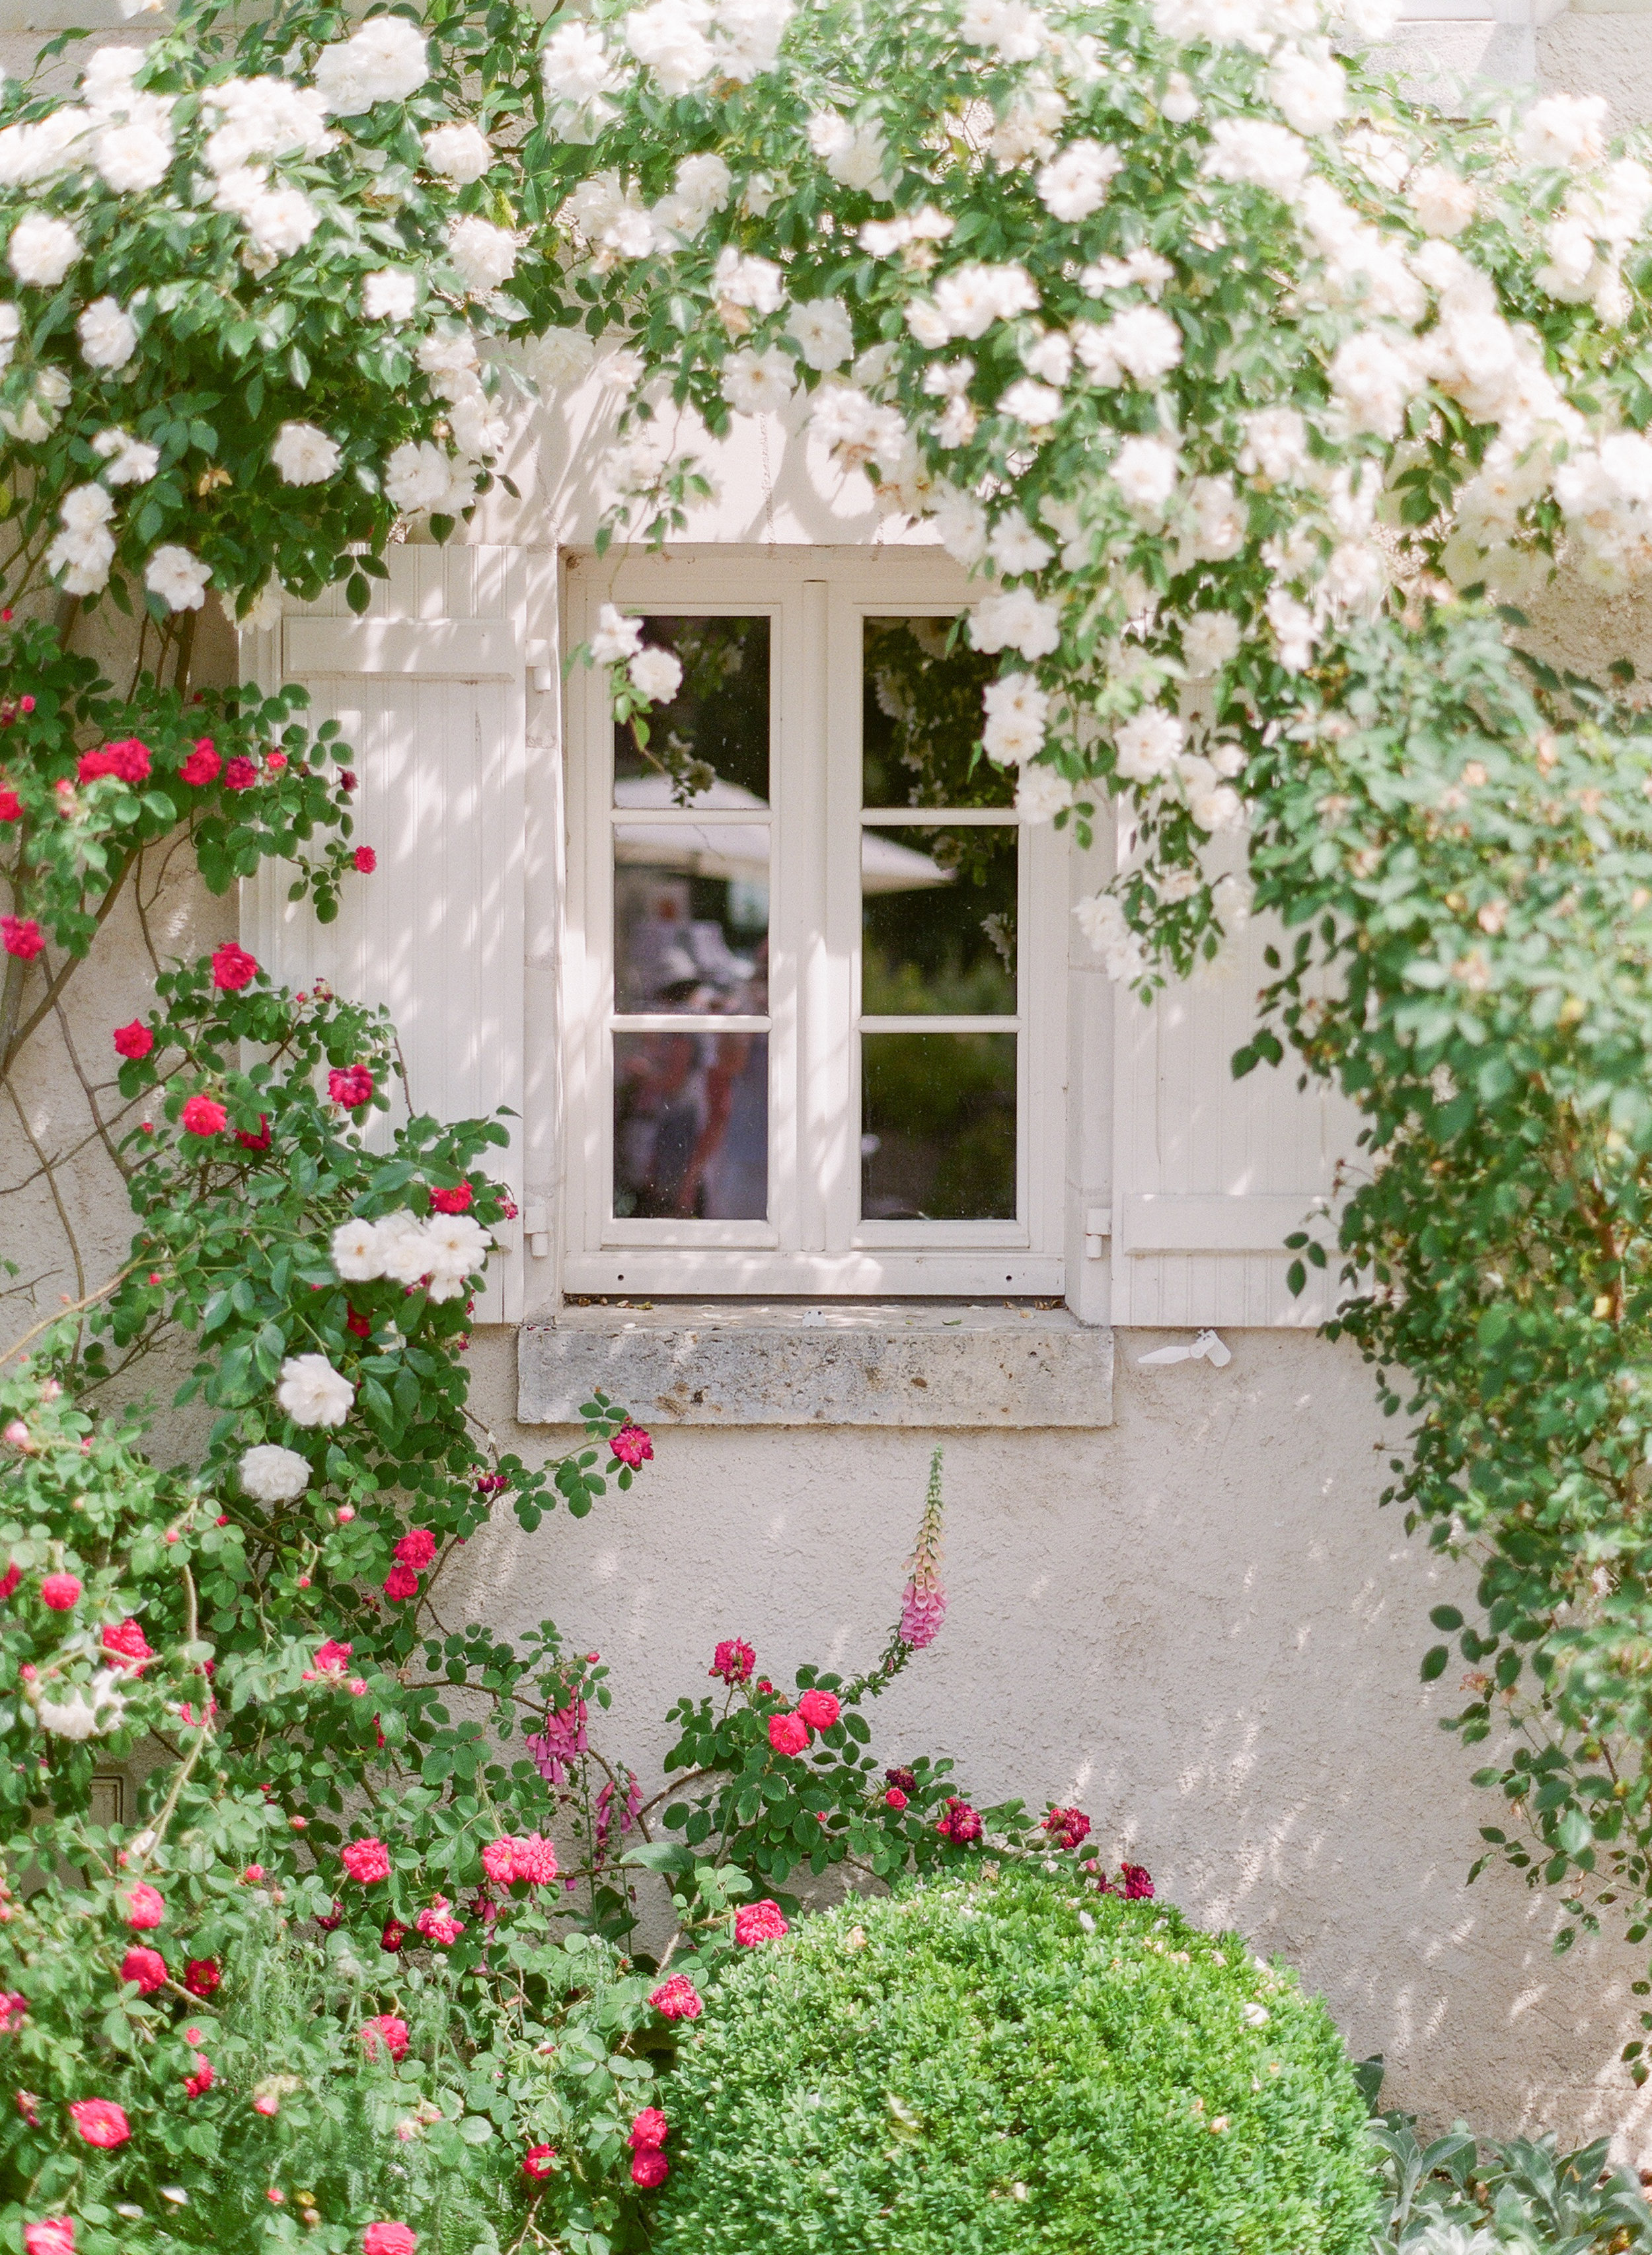 mollycarr-travel-destinationphotography-creativetravel-artists-filmphotography-unearthingtc-gardenroses-climbingroses-whiteroses-redroses-homeinspiration.jpg